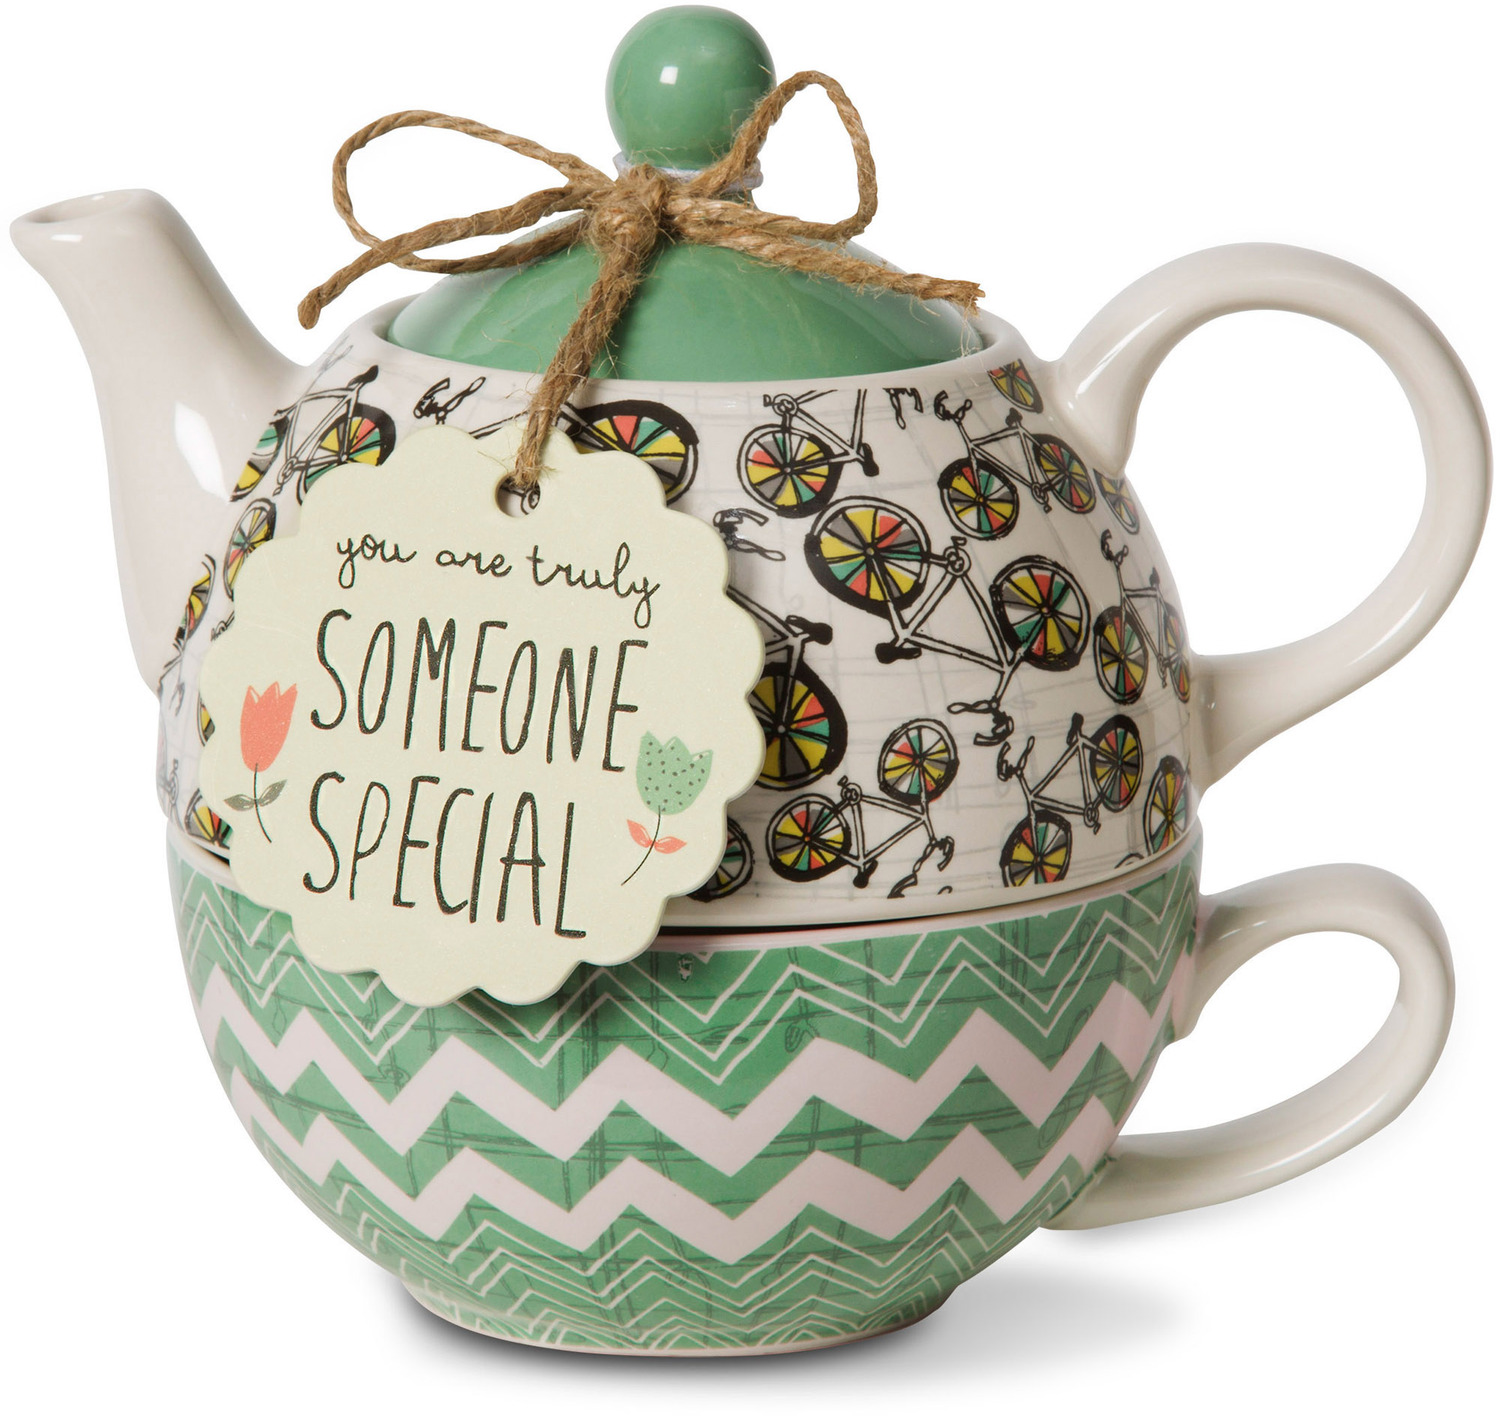 Someone Special by Bloom by Amylee Weeks - <em>Special</em> - Teapot & Cup Combo -